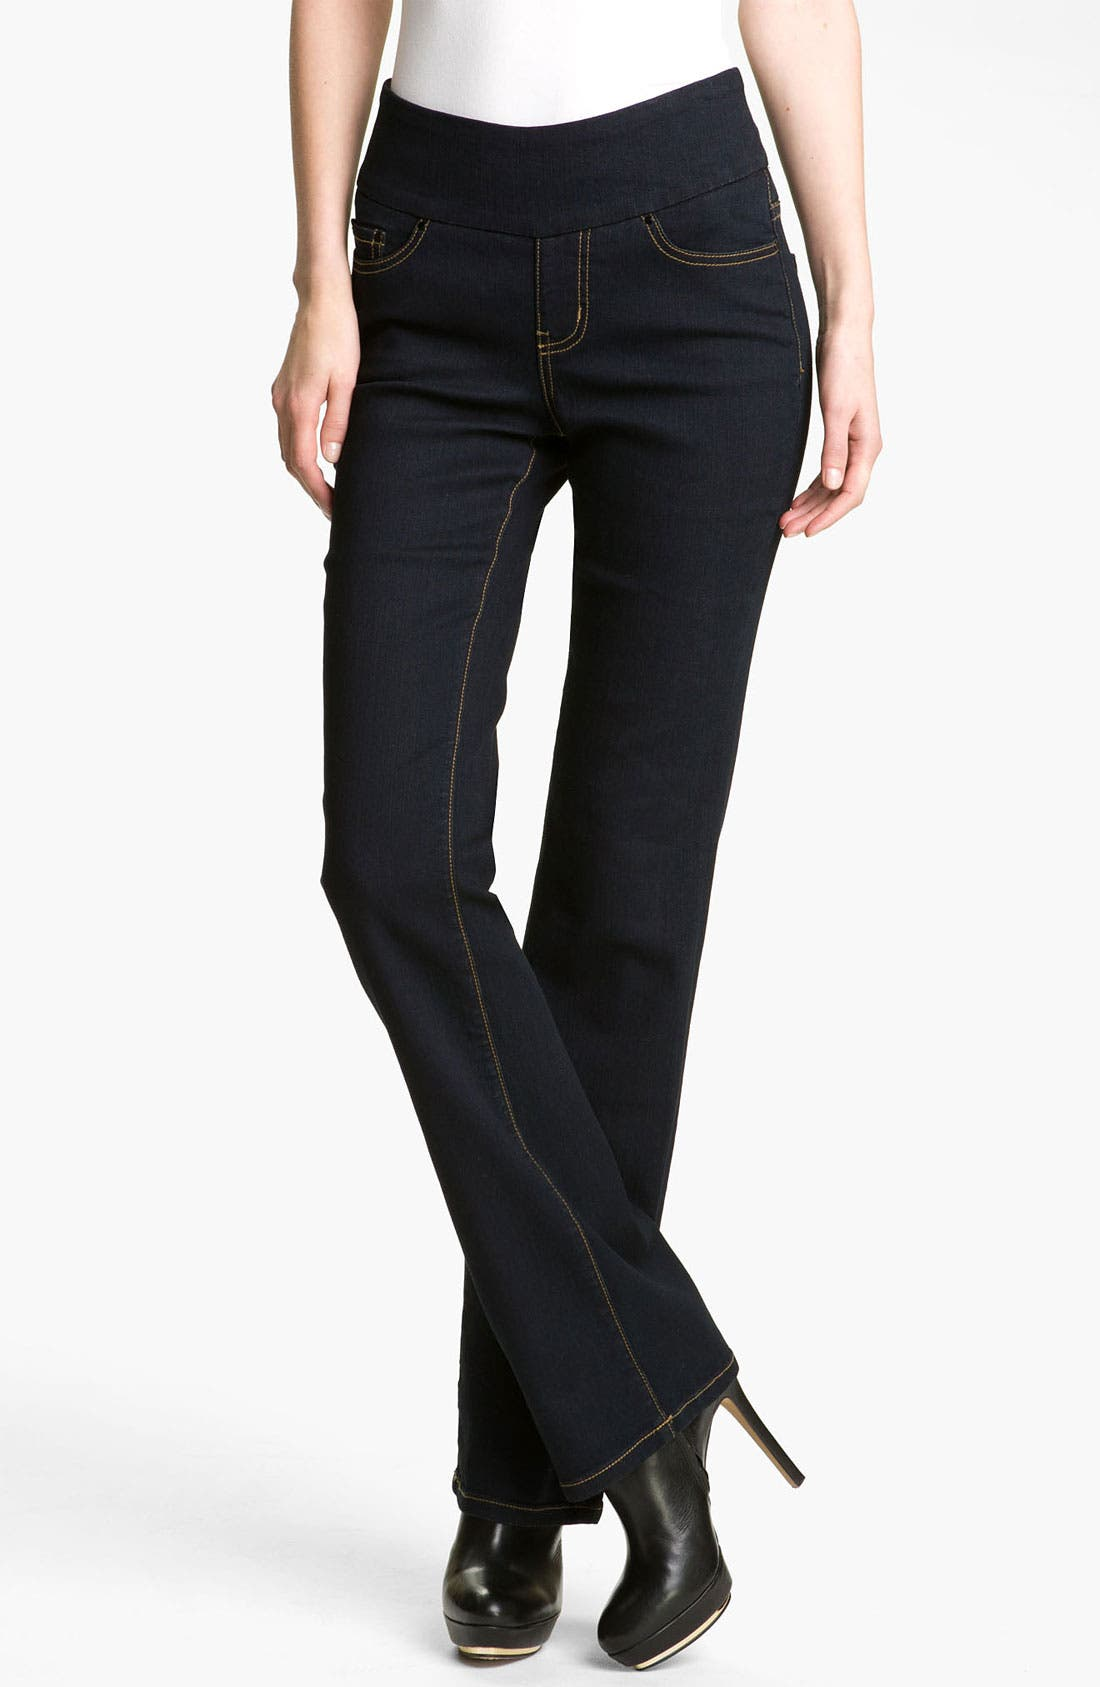 Alternate Image 1 Selected - Jag Jeans 'Paley' Pull-On Jeans (Petite)